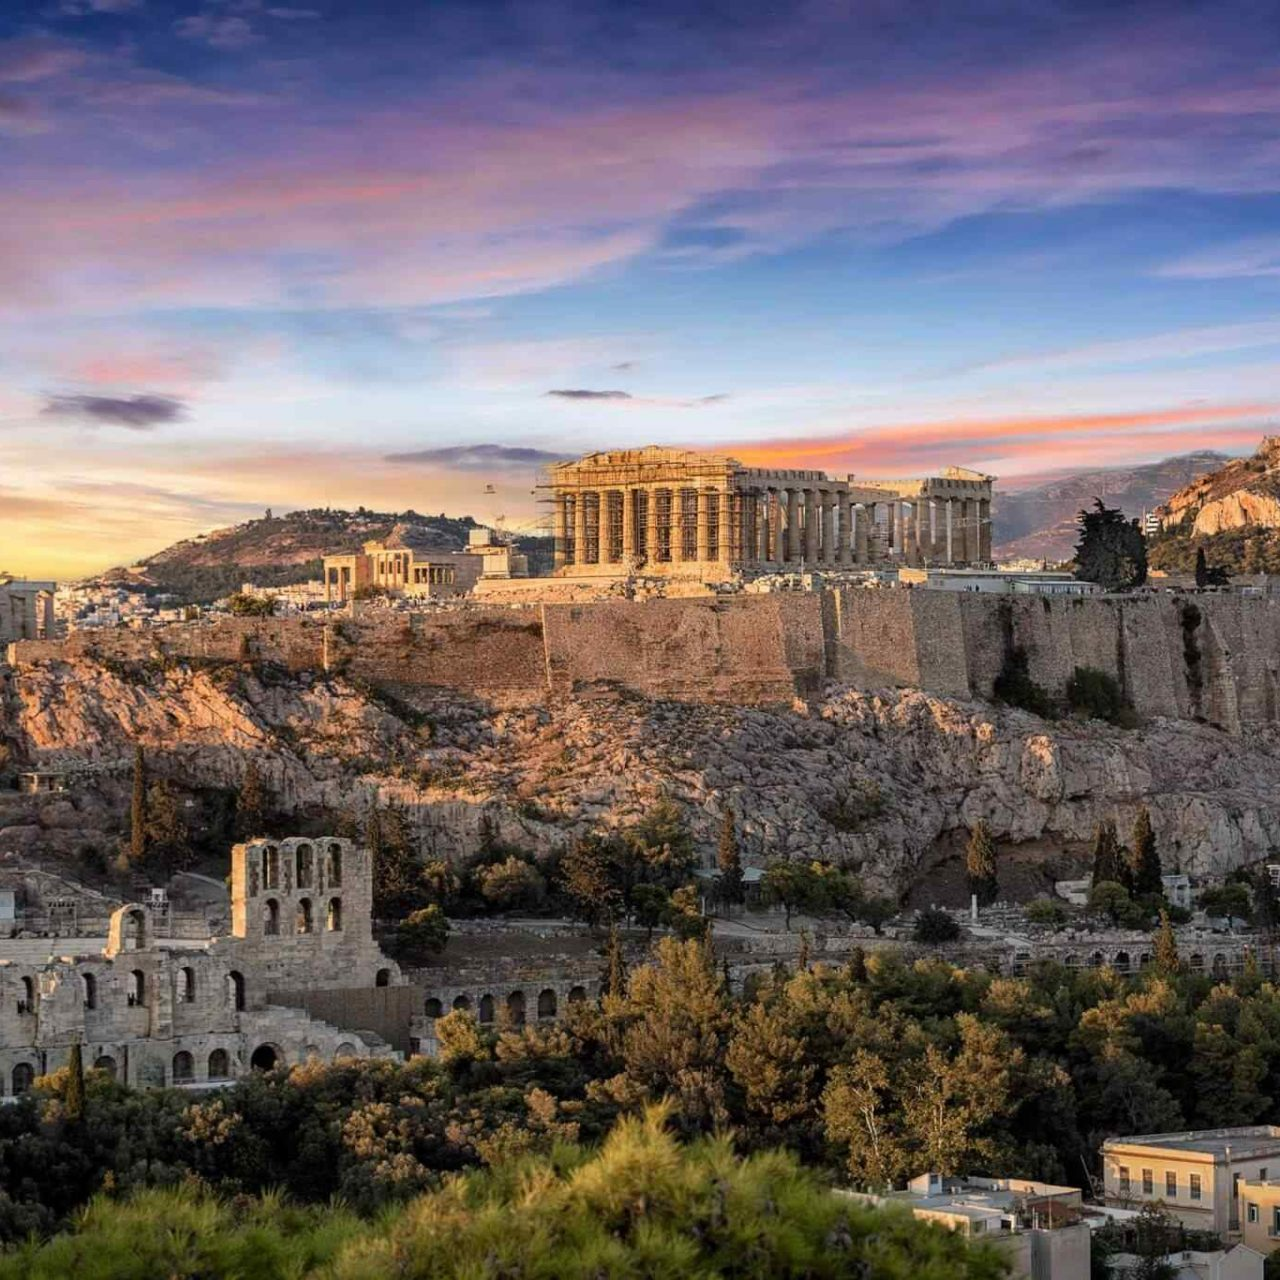 https://proline.co/wp-content/uploads/2018/09/destination-athens-01-1280x1280.jpg